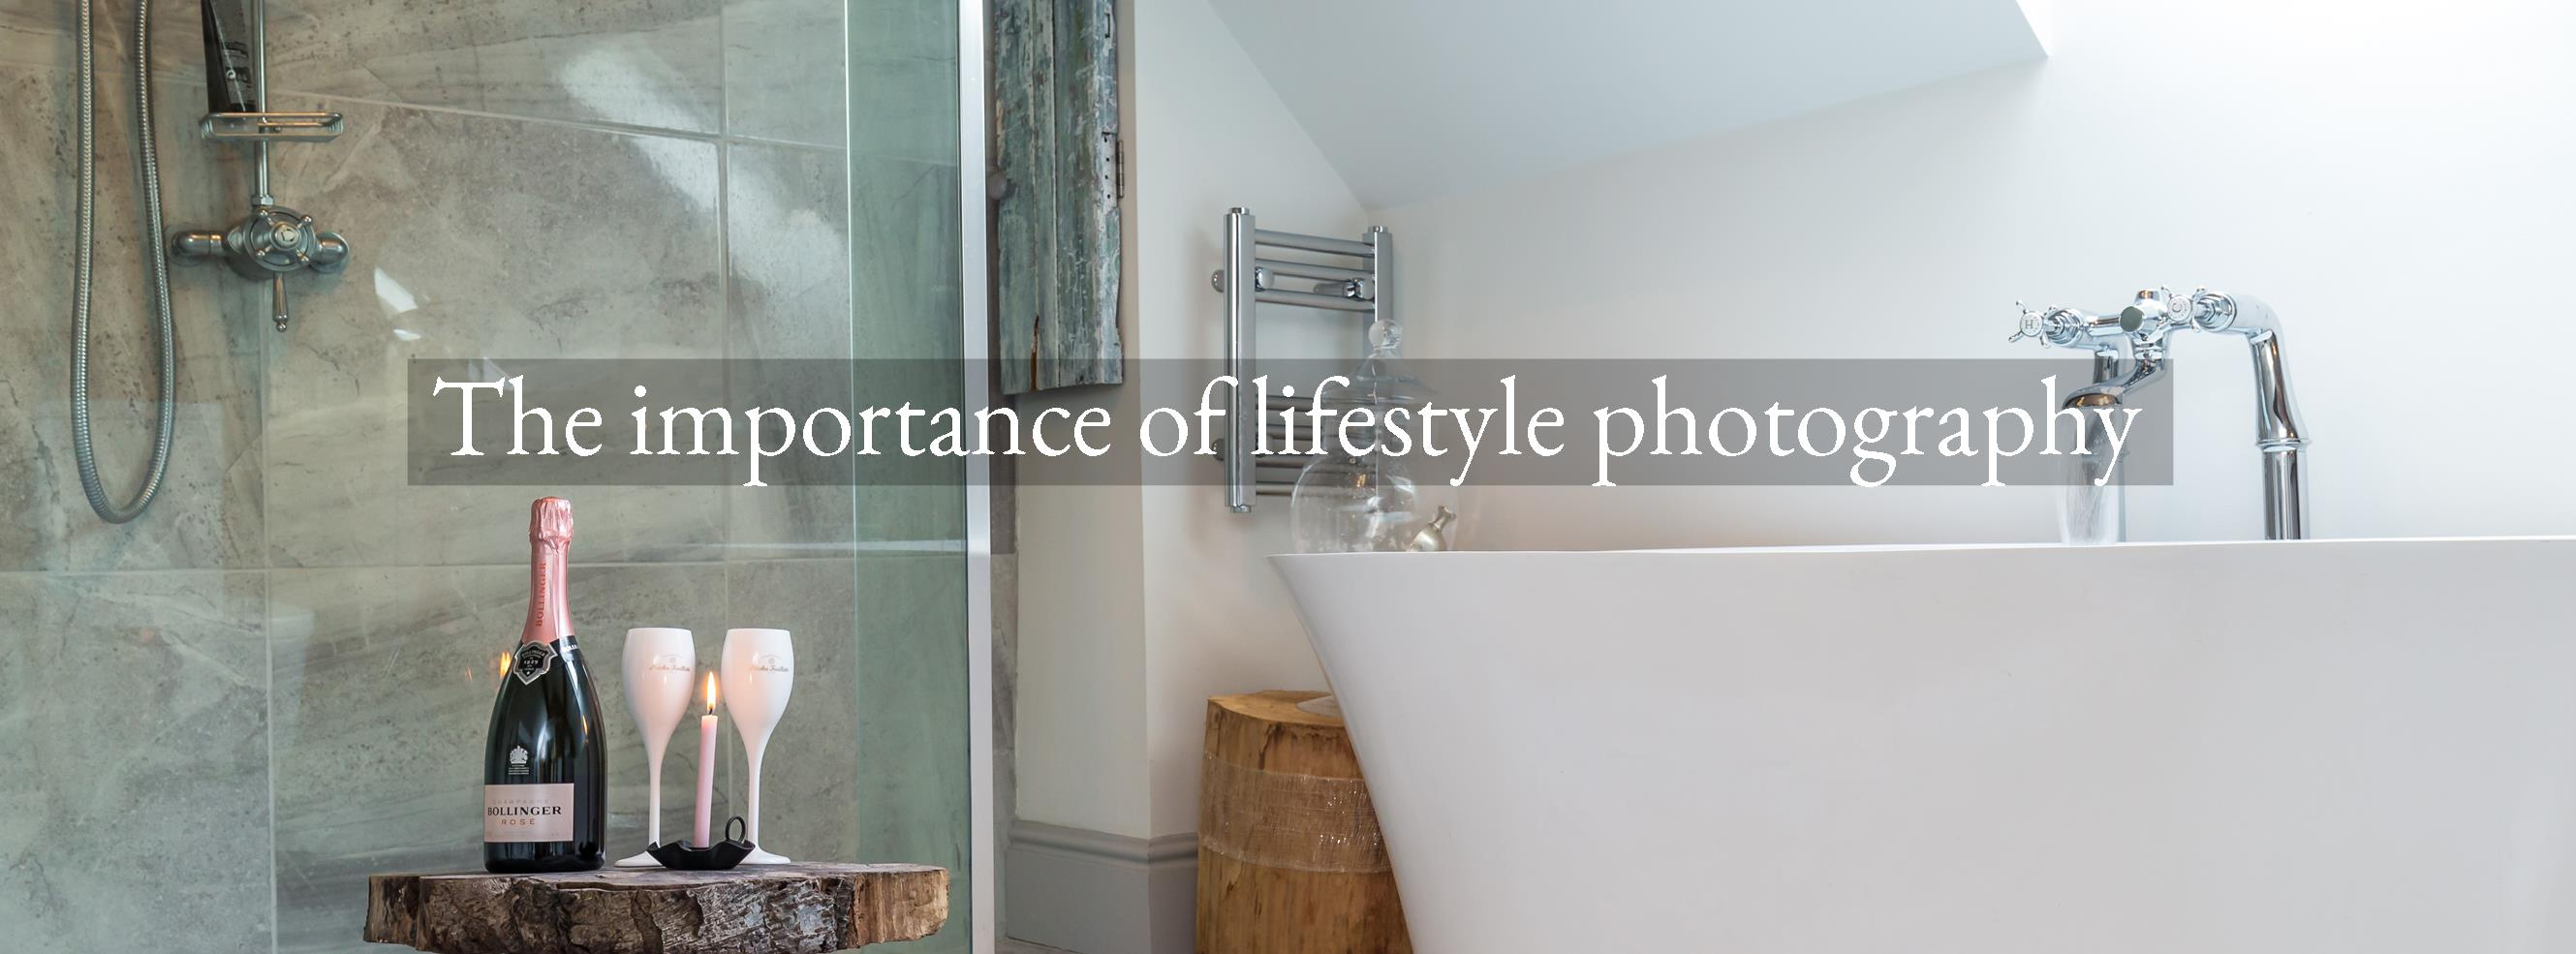 the_importance_of_lifestyle_photography_-_header